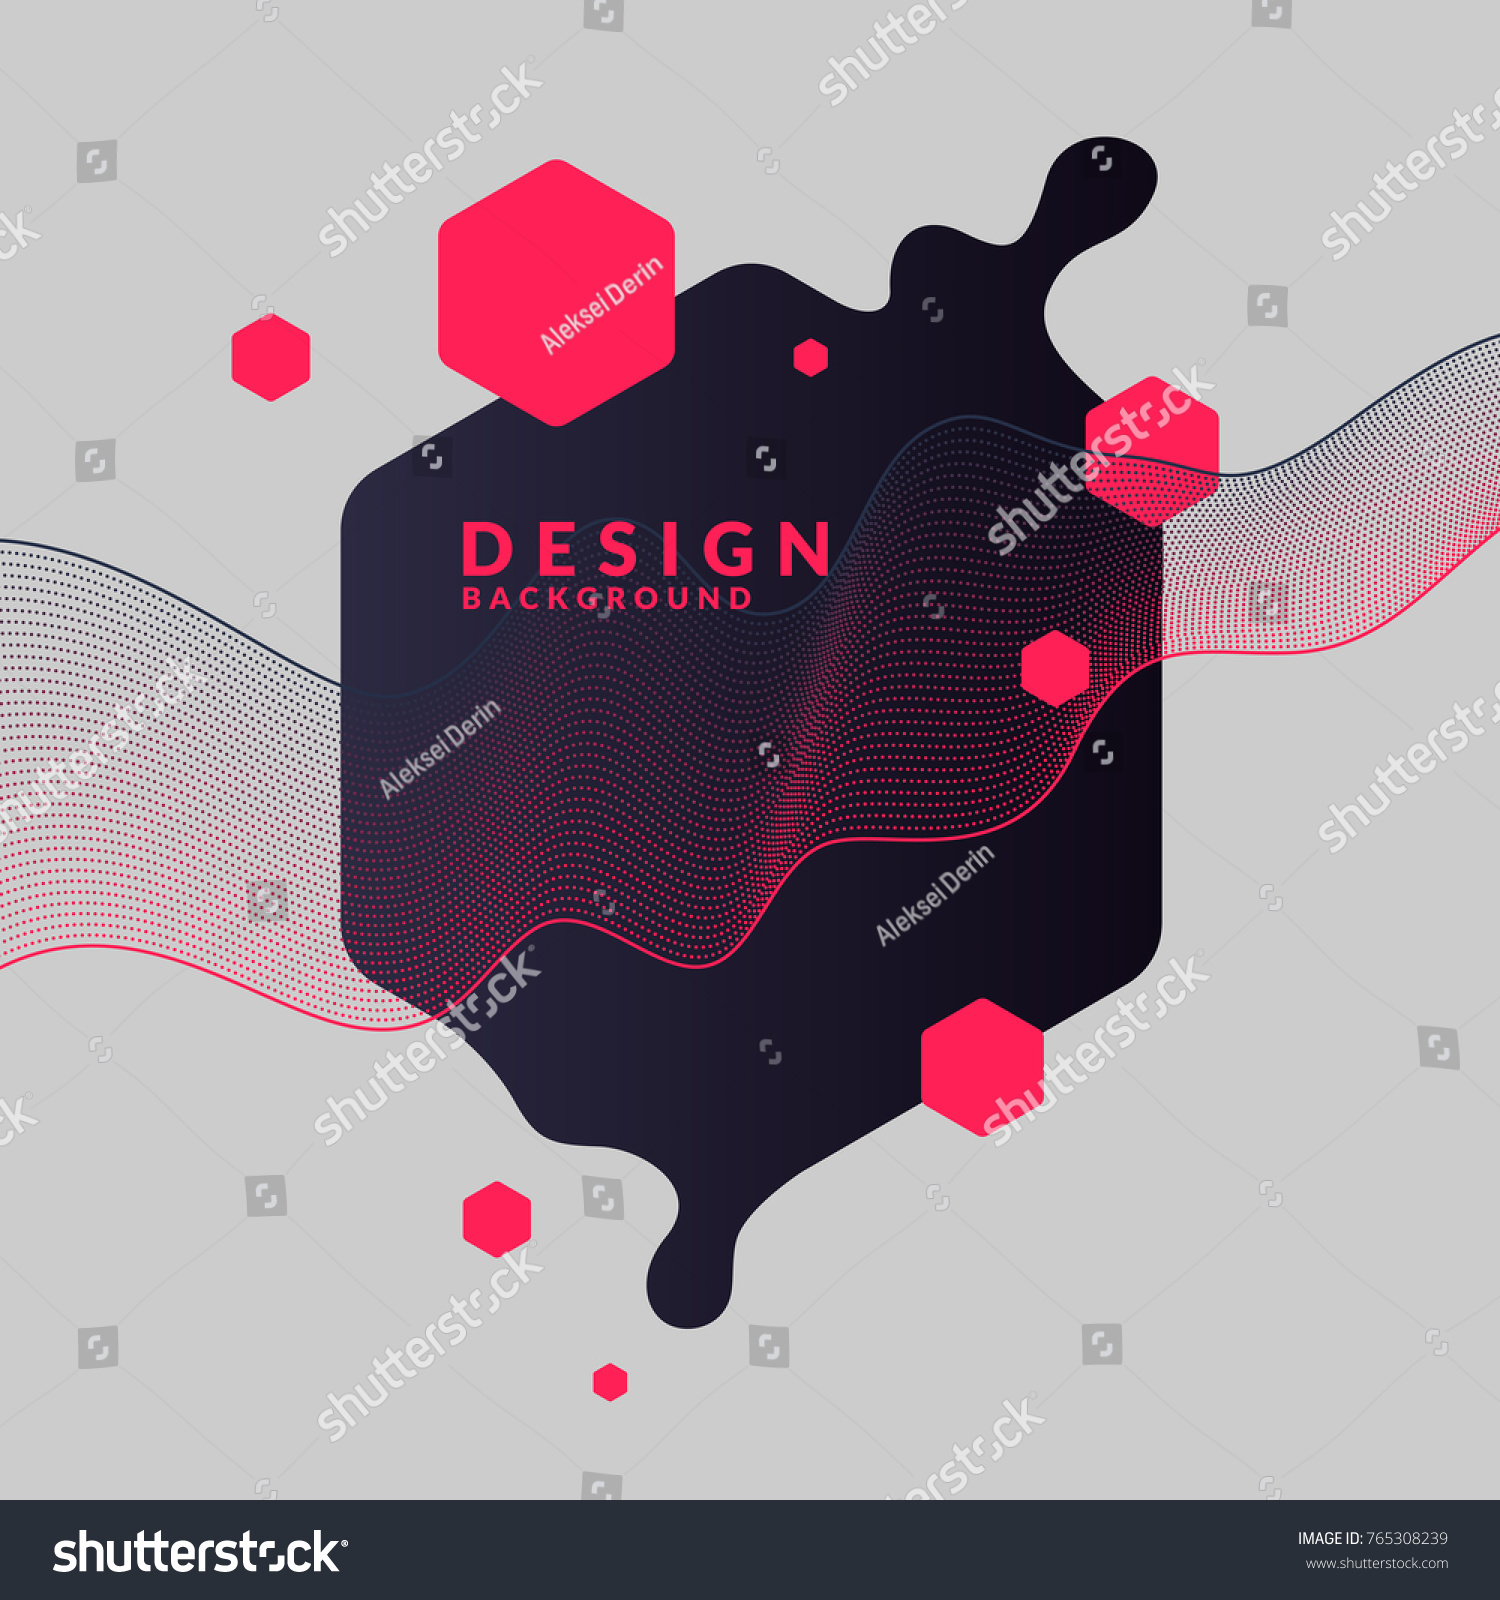 Trendy abstract background. Composition of geometric shapes and splash. Vector illustration #765308239